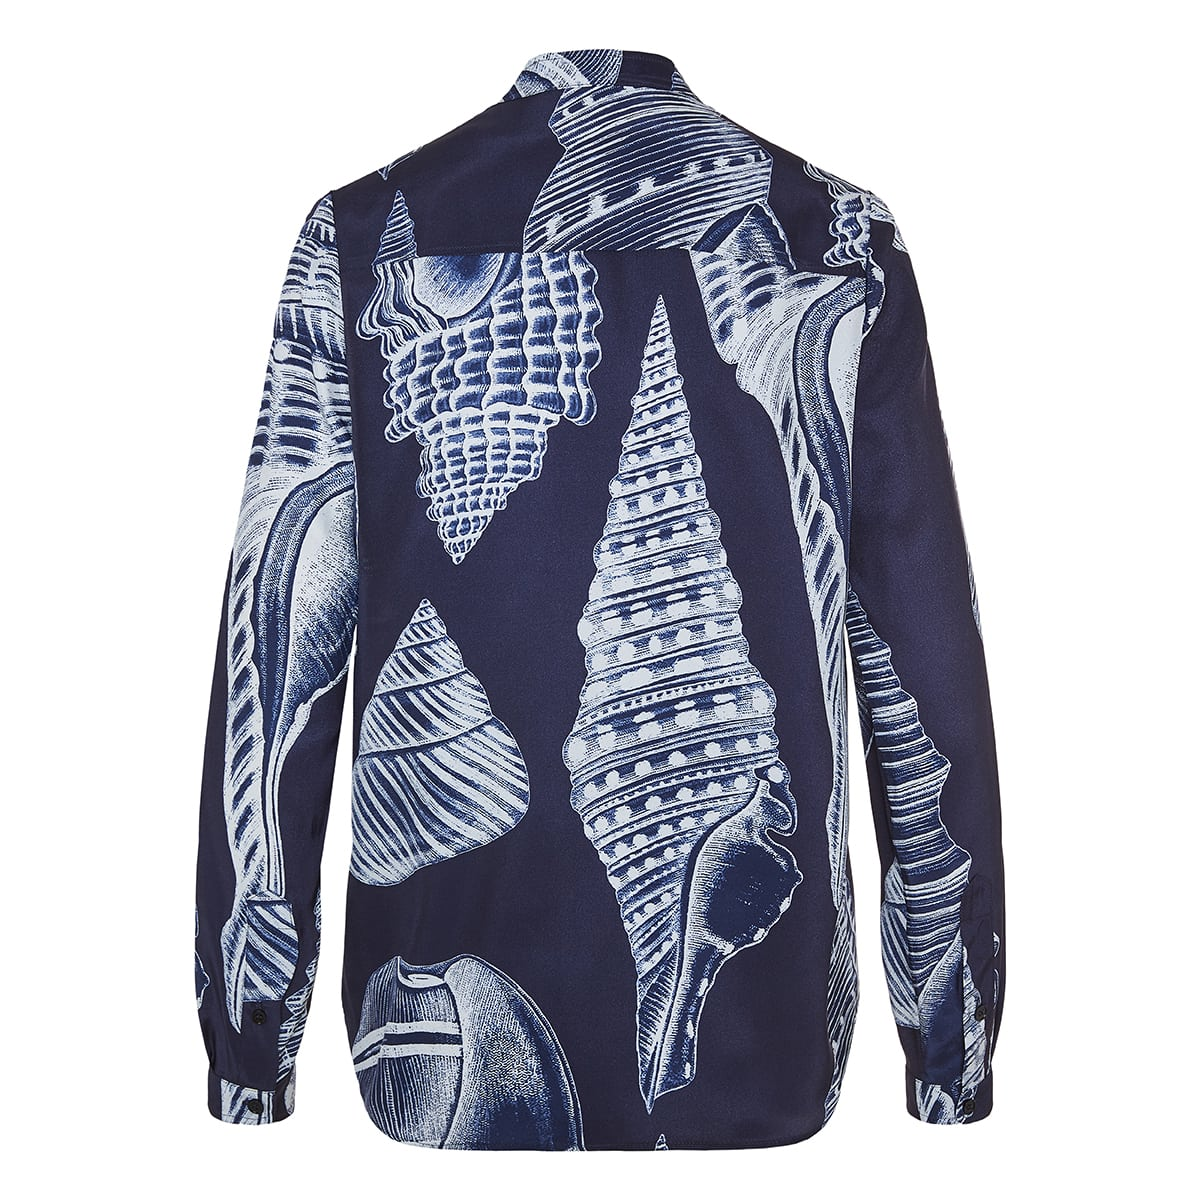 Shell printed silk shirt